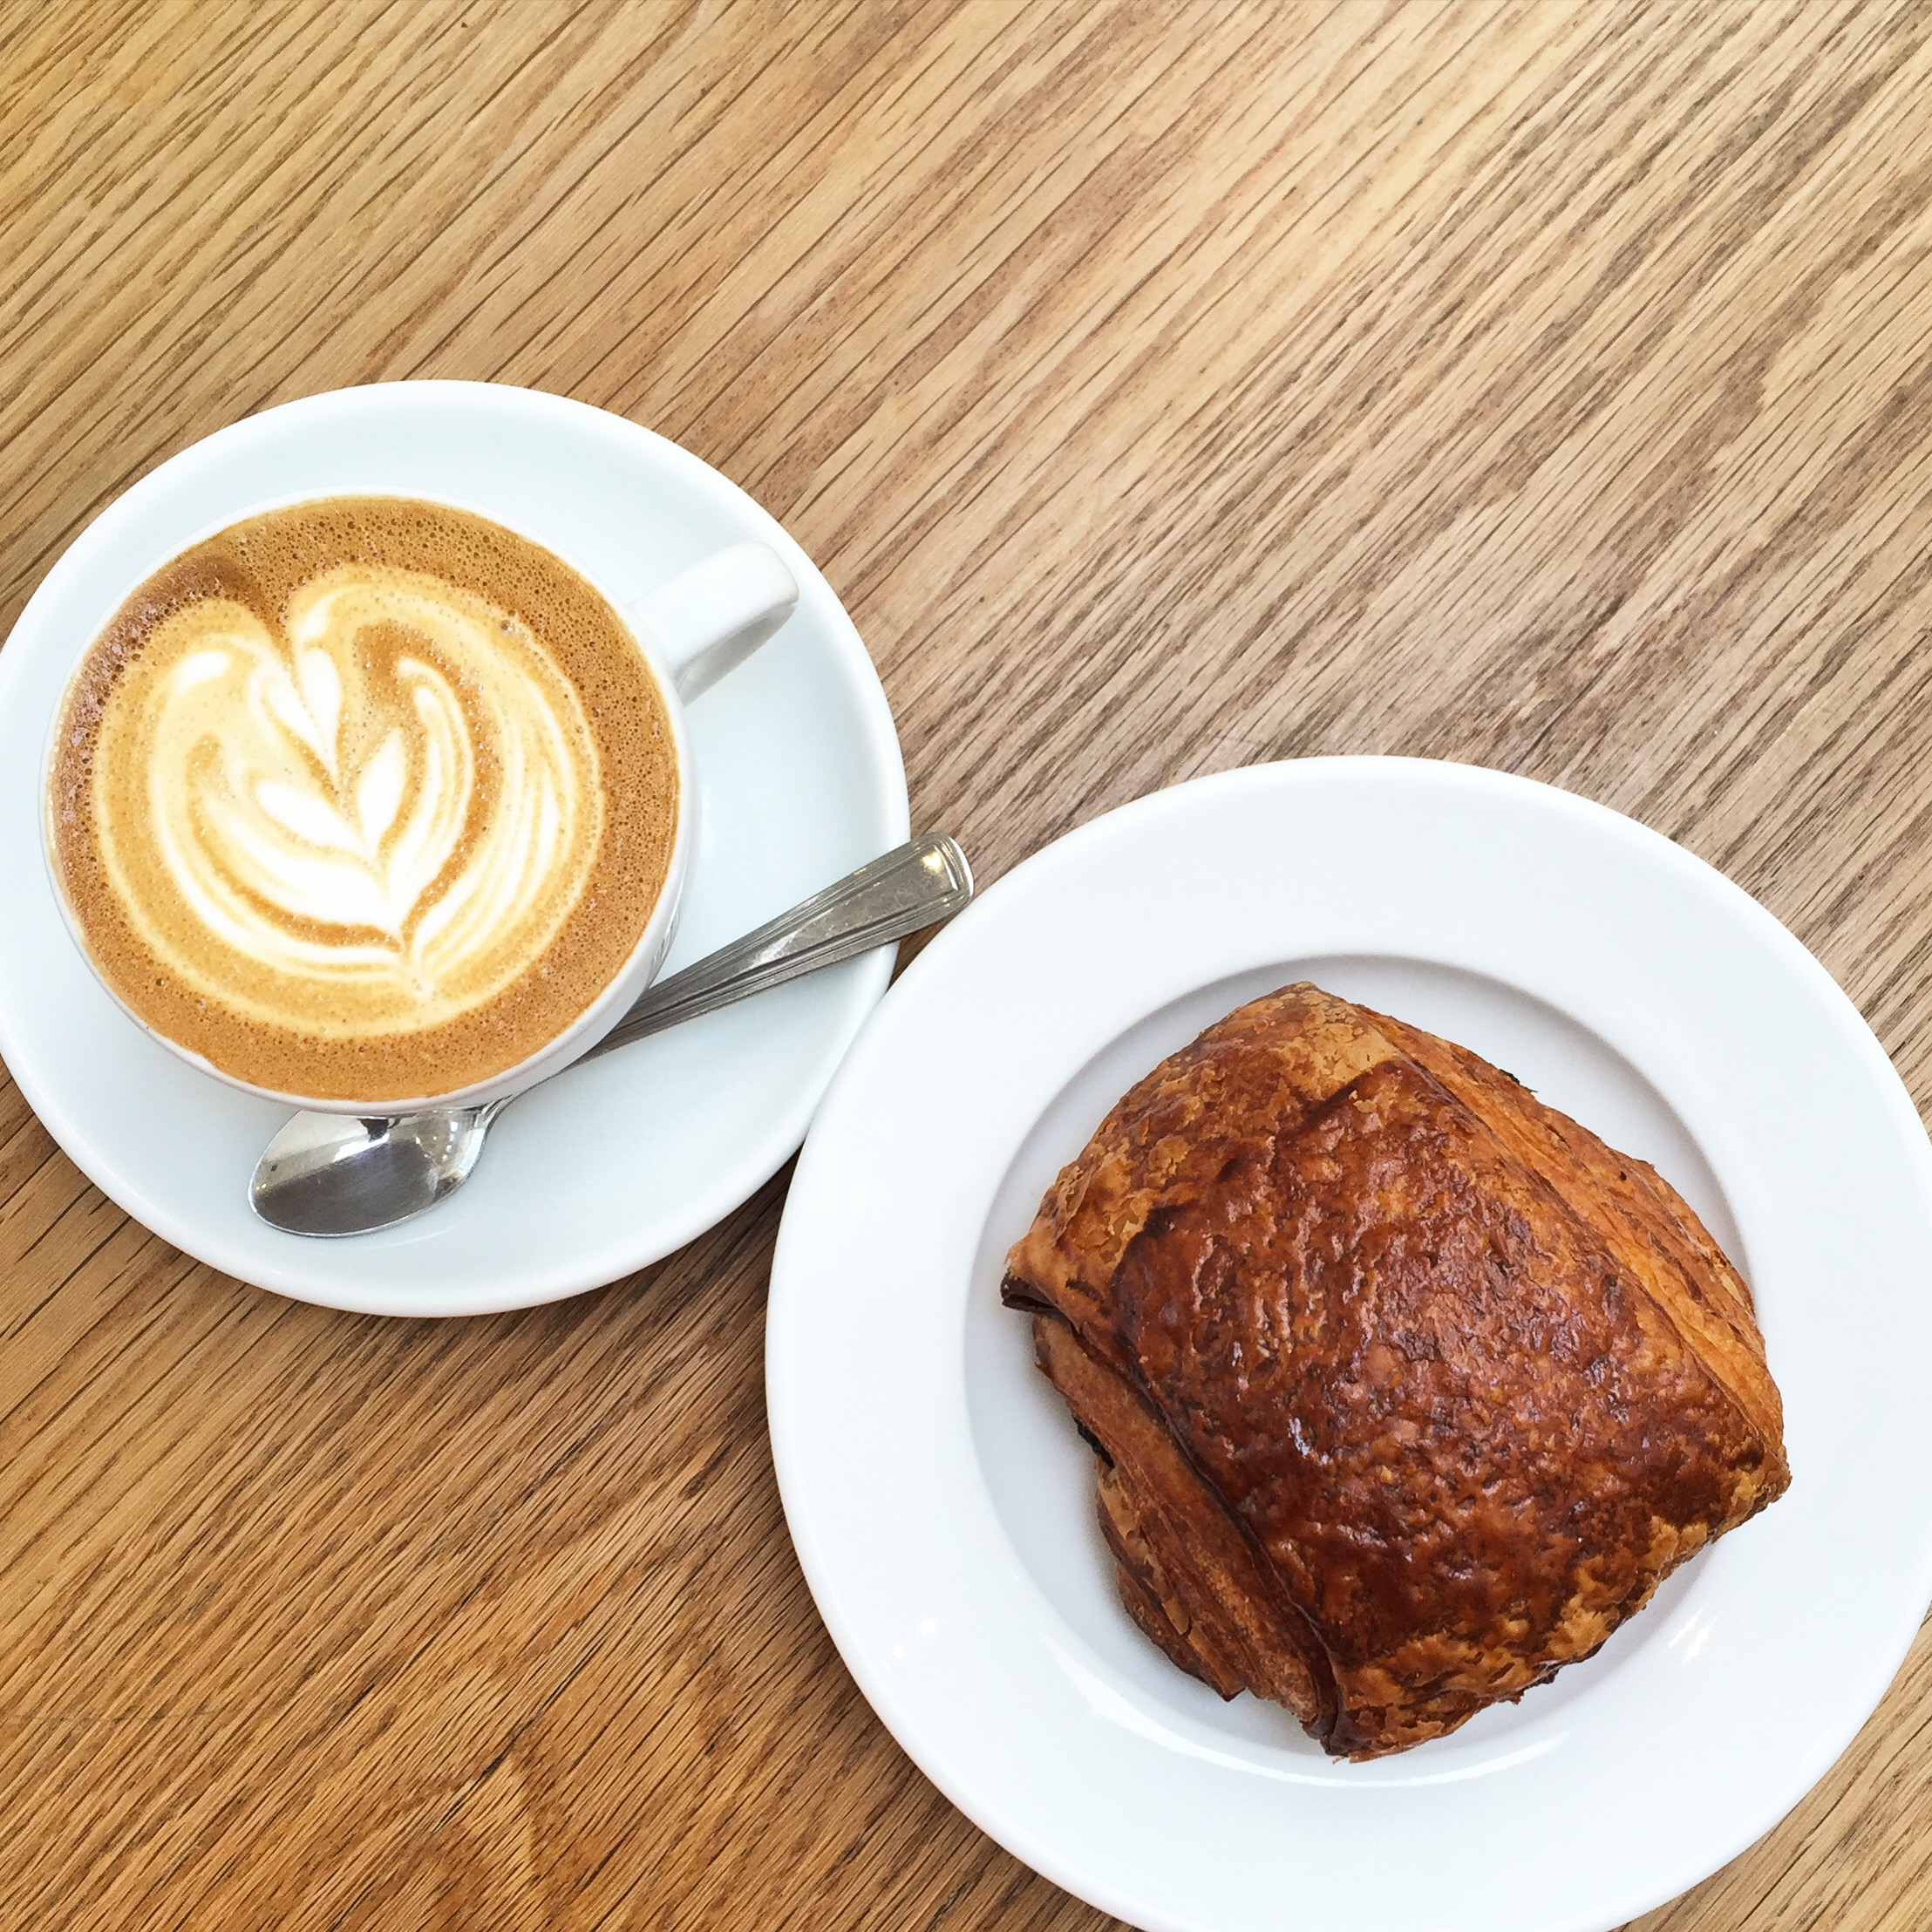 Their Flat White was perfection. The pain au chocolat pastry, on the other hand, was too tight and lacked the light flakiness that I've come to expect - I've been permanently spoiled by Vancouver's  Beaucoup Bakery  - no one outside of Paris can hold a candle to their viennoise pastries.